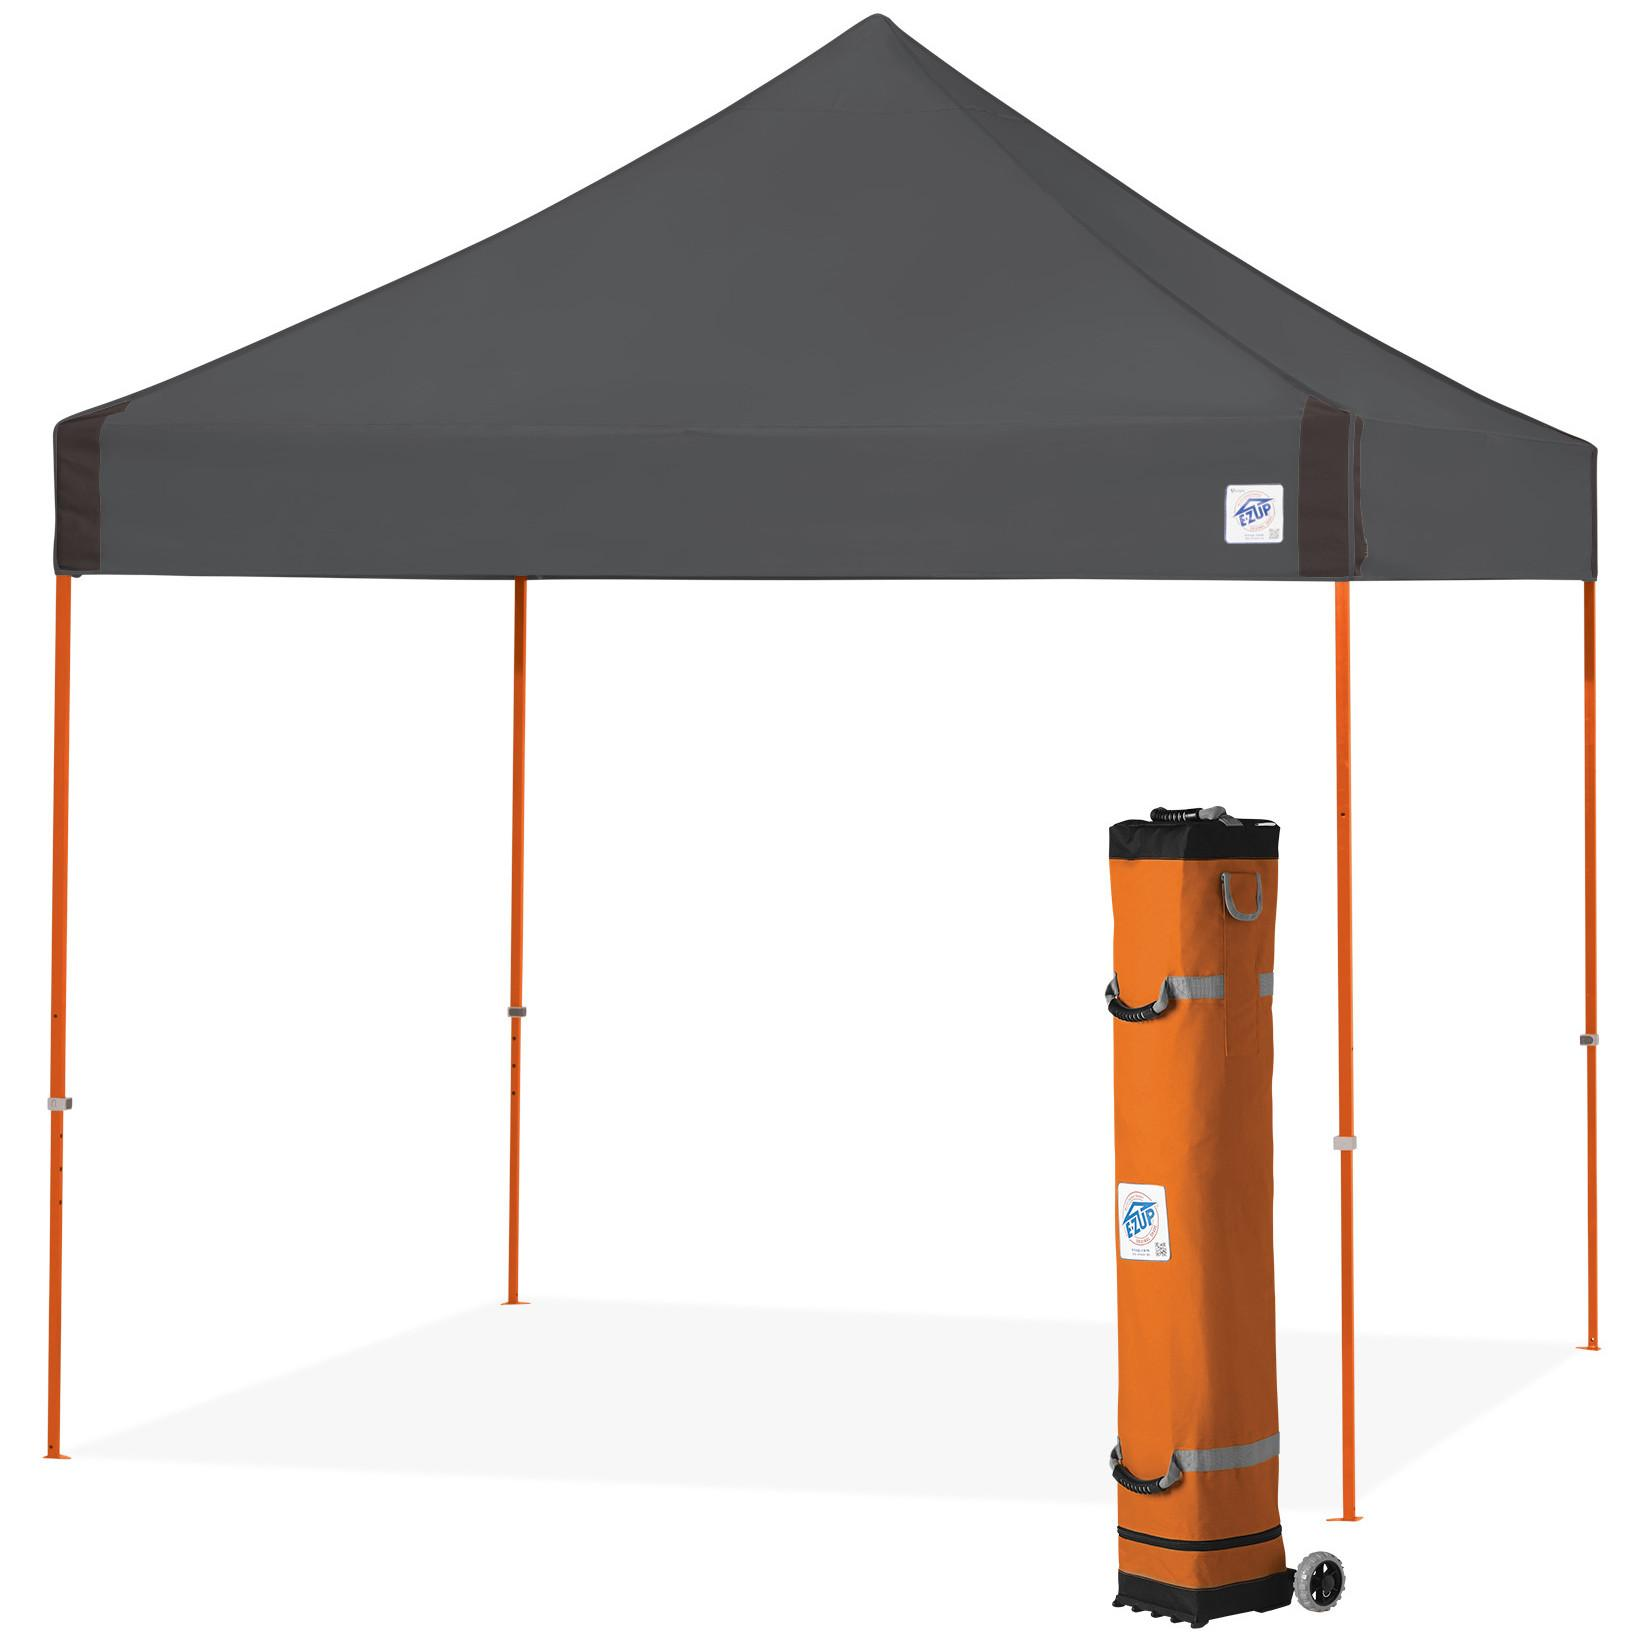 10x10 canopy beach canopy canopy red canopy e-z up ez up  sc 1 st  Amazon.com & Amazon.com : E-Z UP Vantage Instant Shelter Canopy 10 by 10 ...